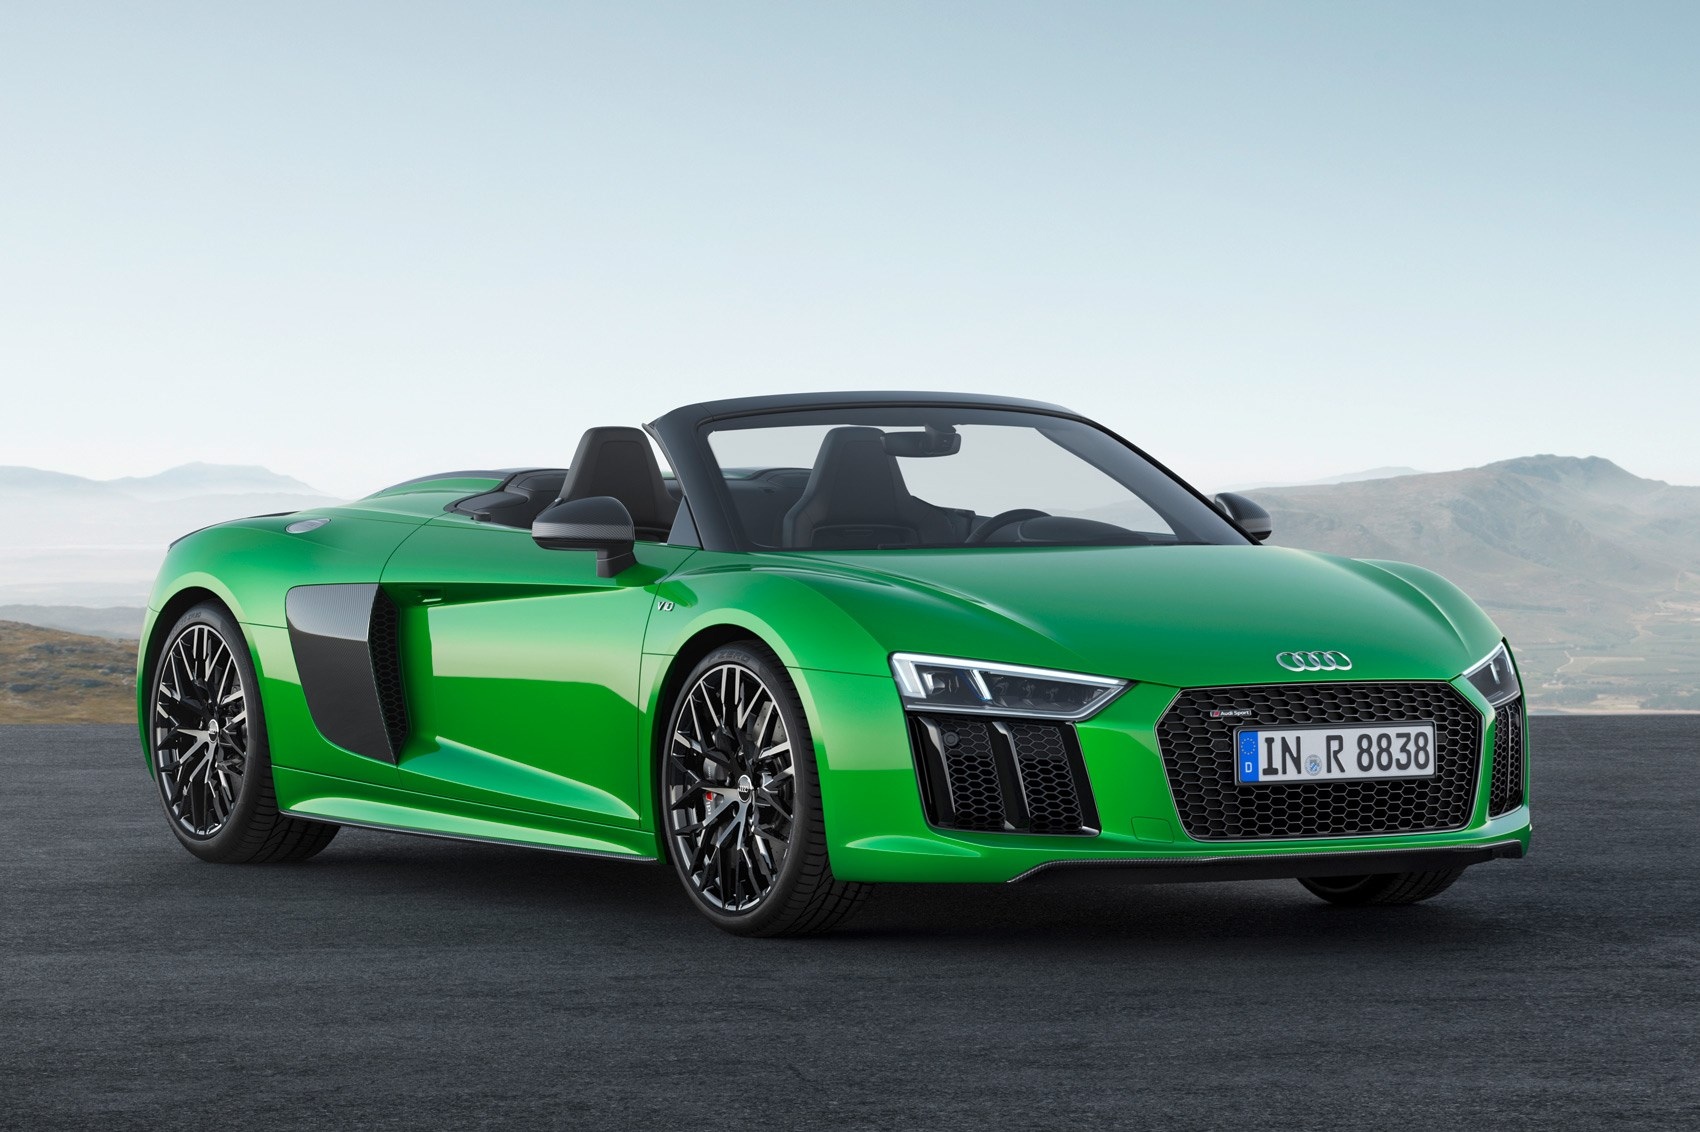 The Hulk goes topless: new Audi R8 Spyder V10 Plus ...